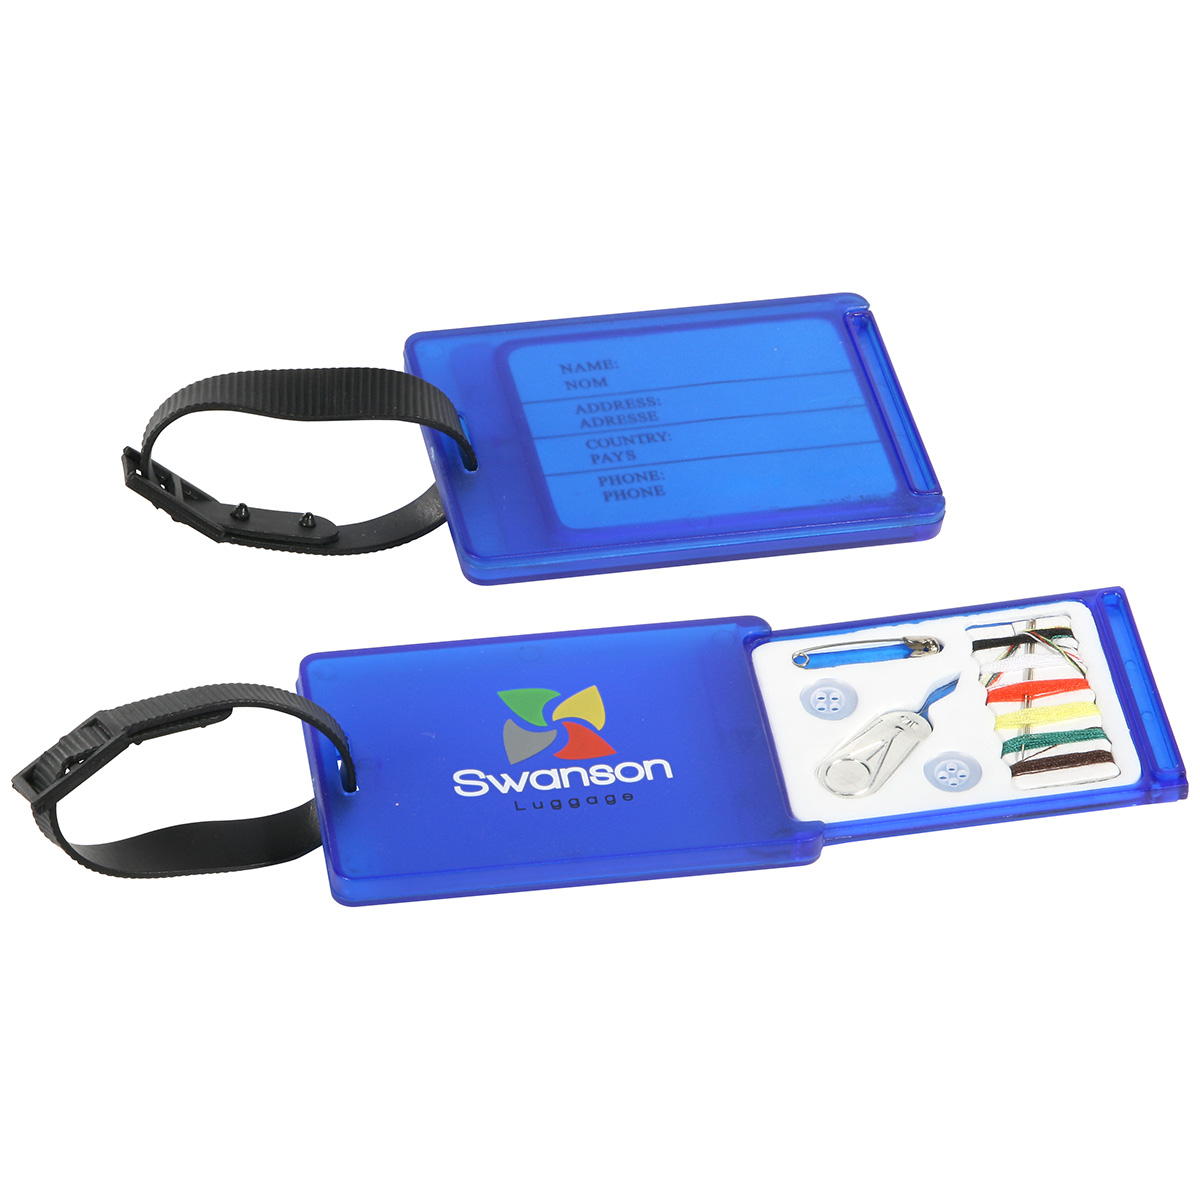 Travel Aid Luggage Tag & Sewing Kit, WTV-LS10 - 1 Colour Imprint